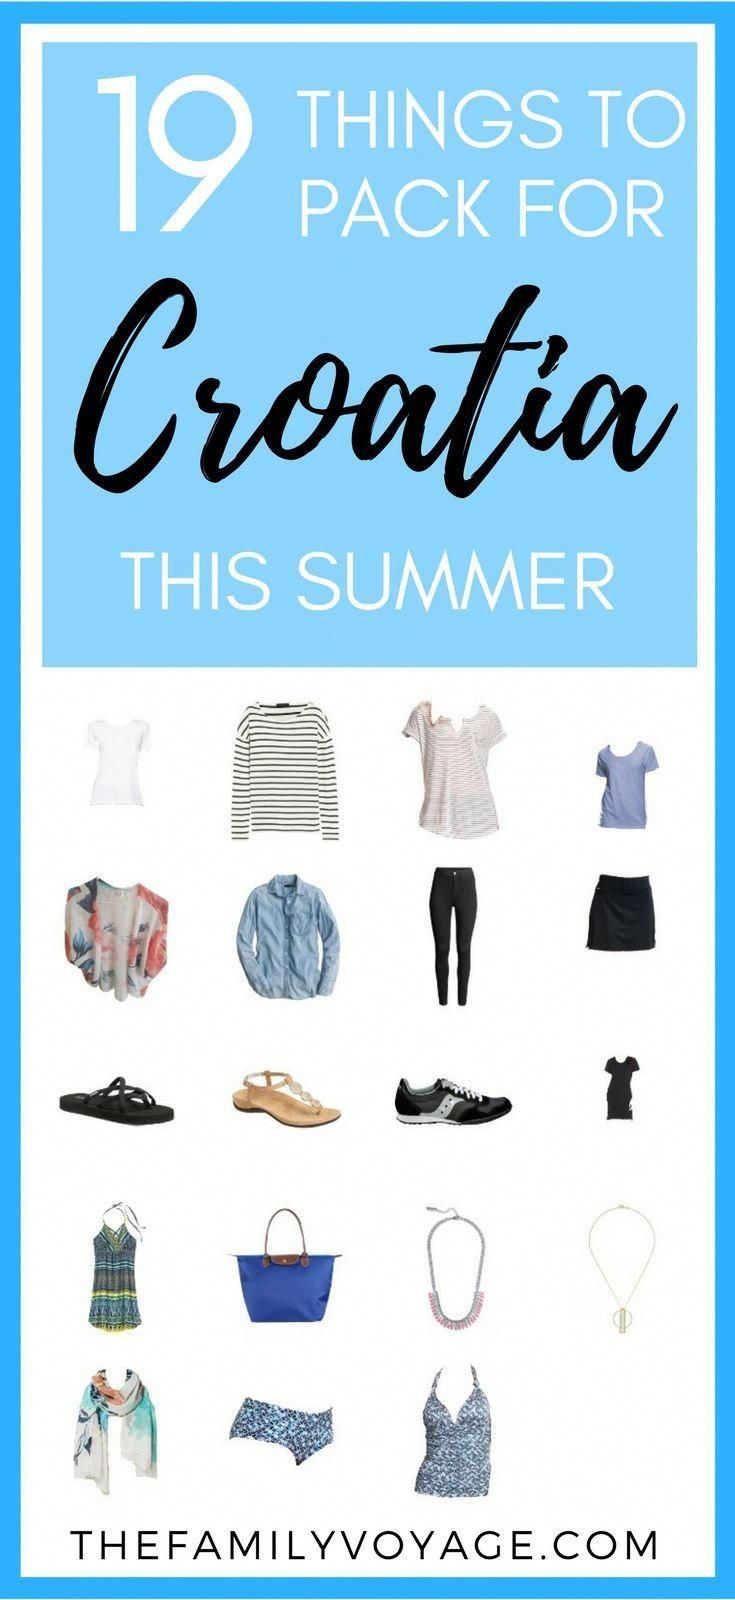 Summer Travel Capsule Wardrobe: What to Pack for Croatia in June #travelwardrobesummer